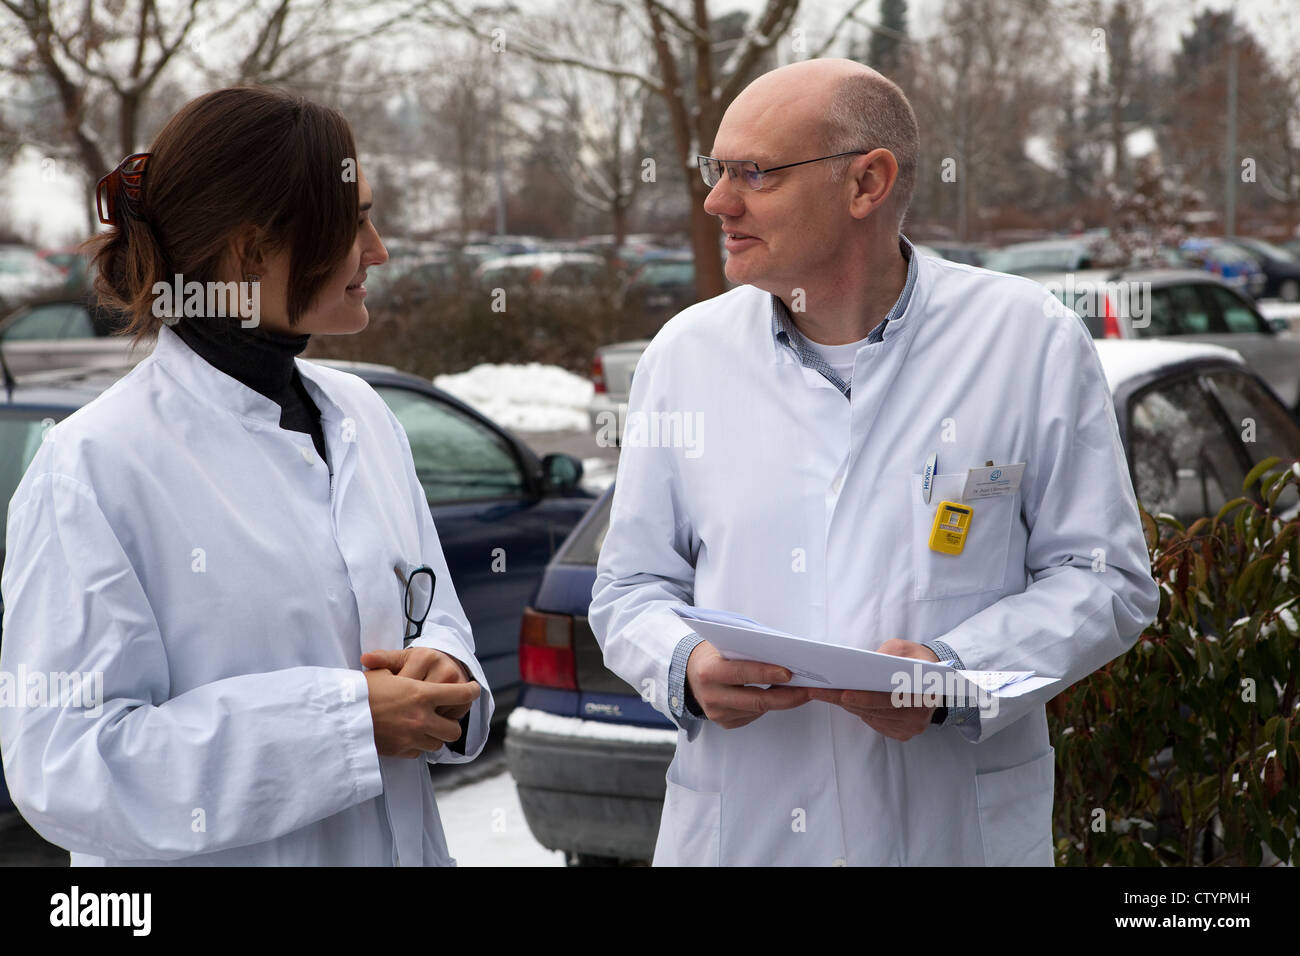 Older doctor having a conversation with younger female colleague - Stock Image